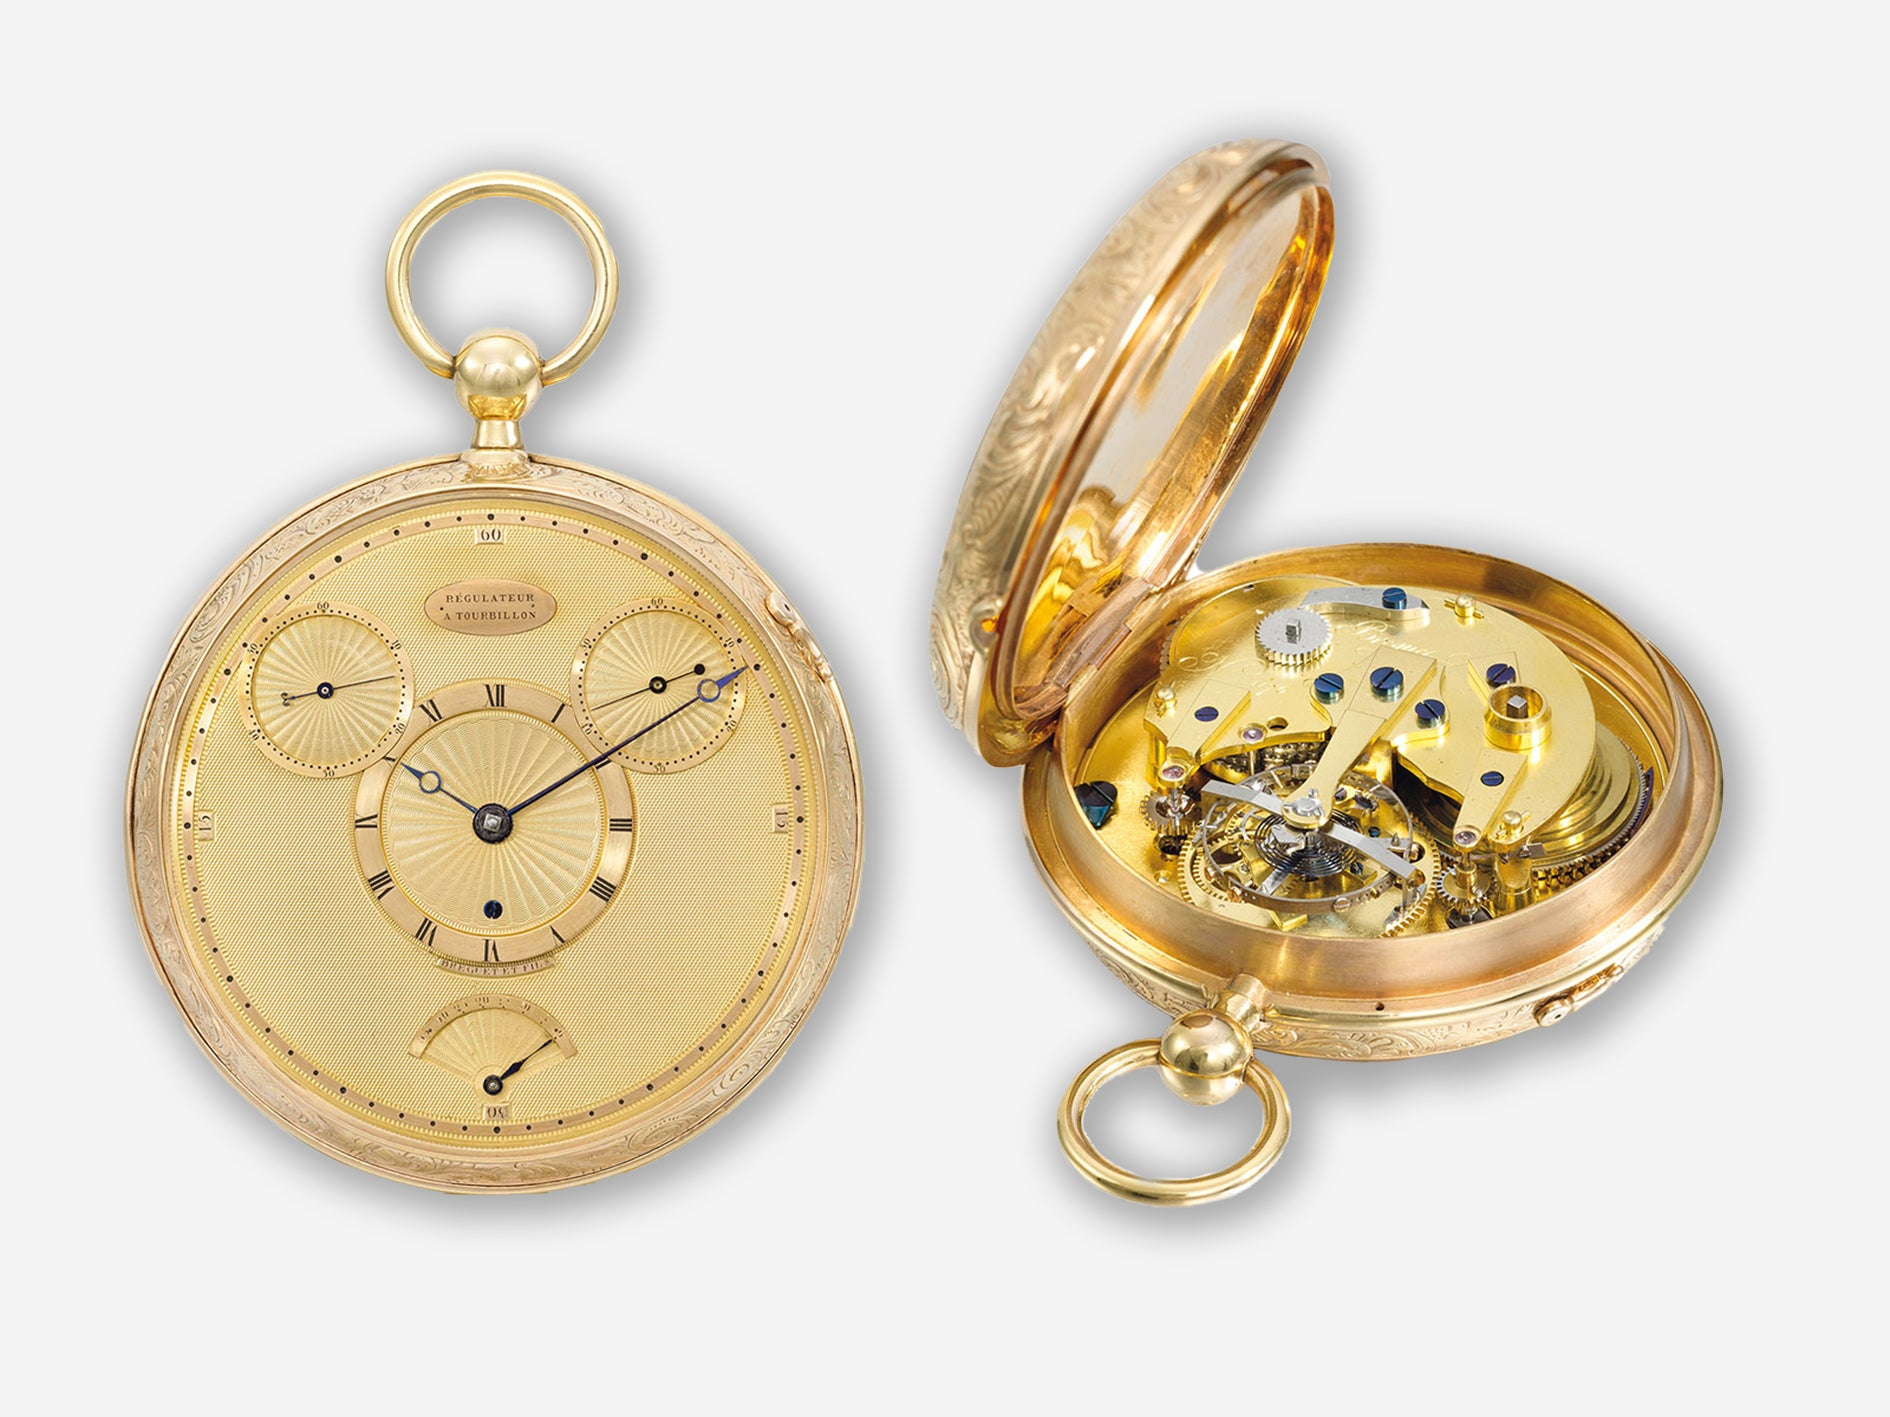 Abraham-Louis Breguet No 1176 with tourbillon and natural escapement